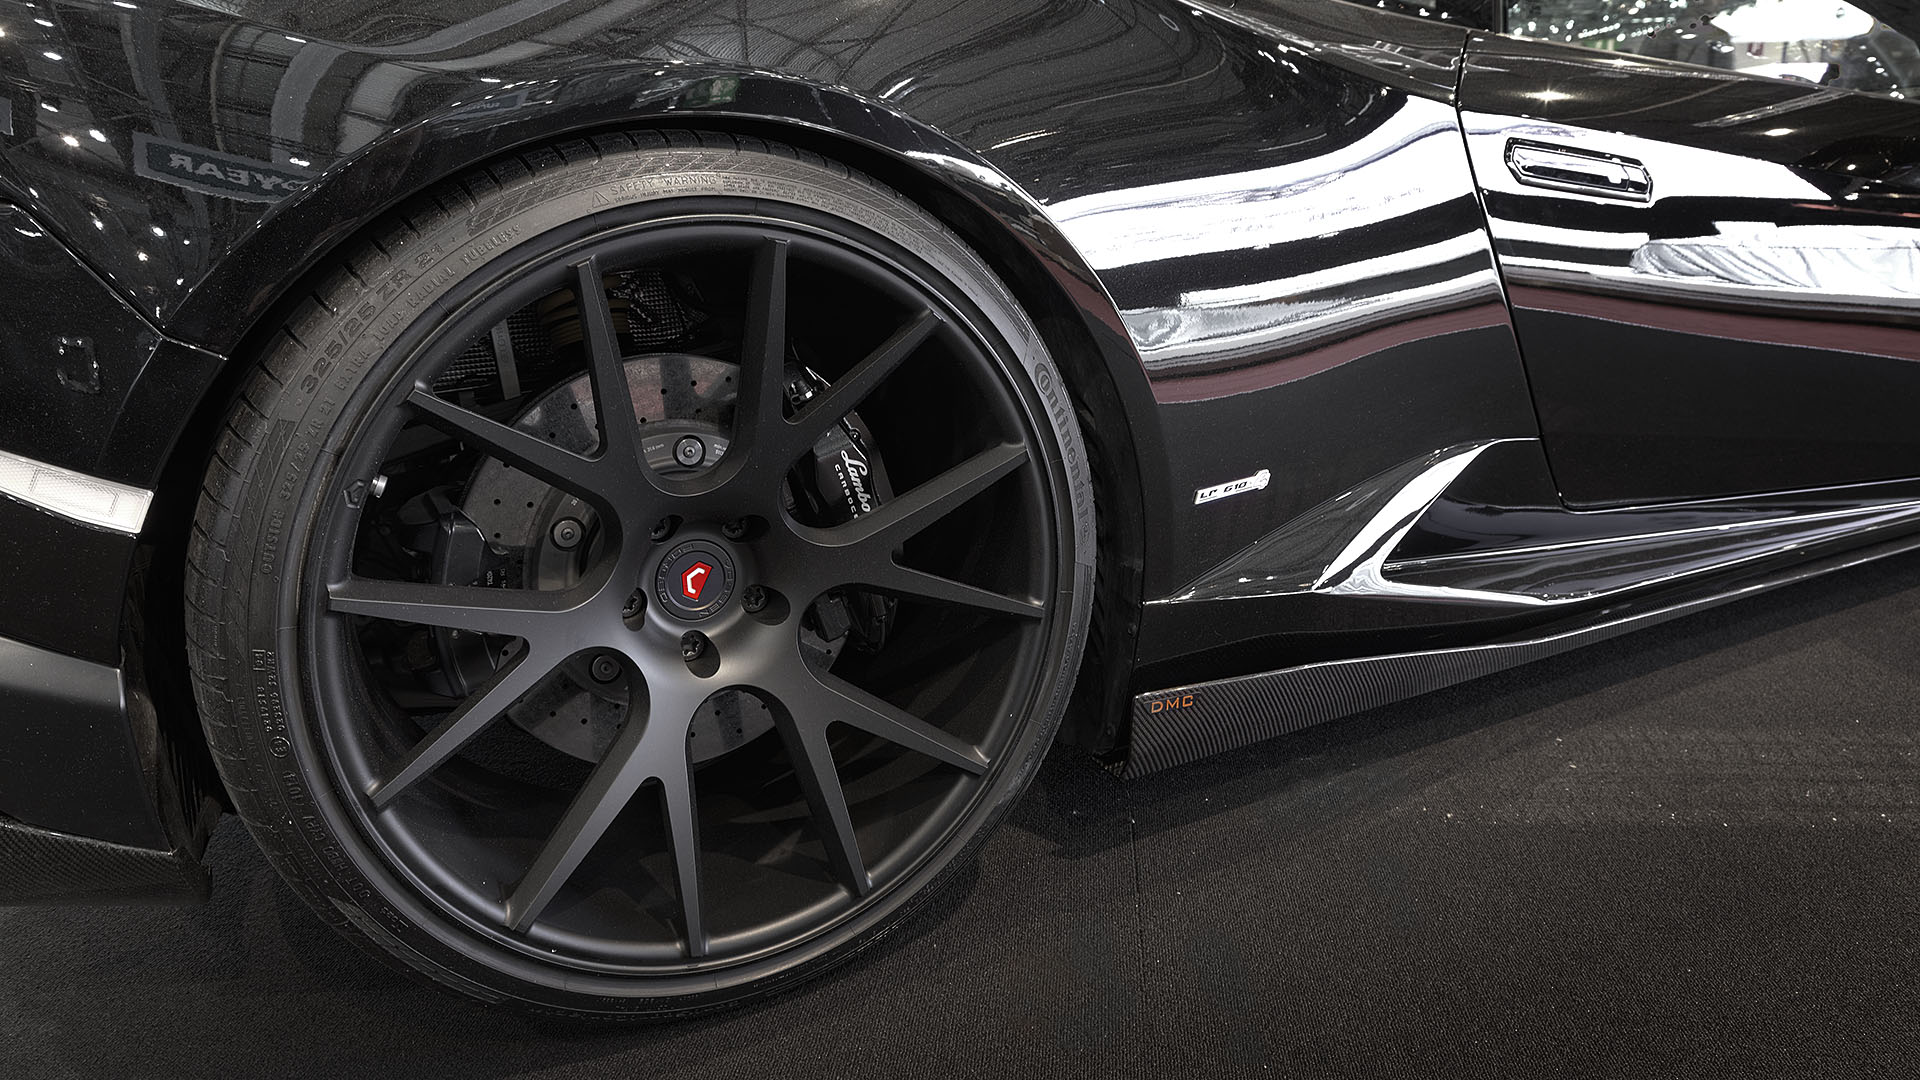 Massive 21 inch wheels at the rear